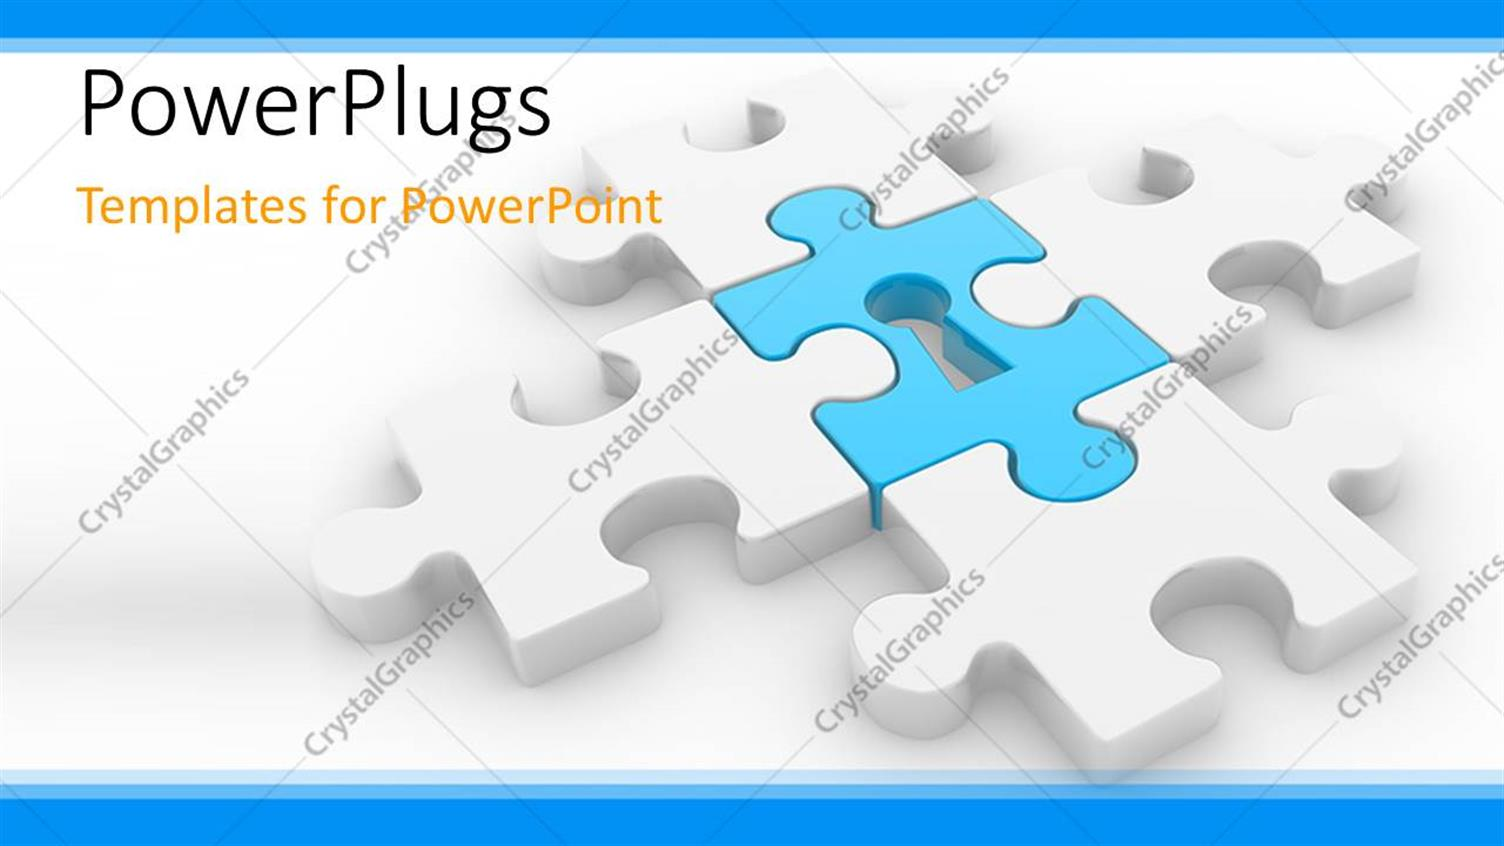 PowerPoint Template Displaying Puzzle Synced Together with Keyhole in Center and White Color